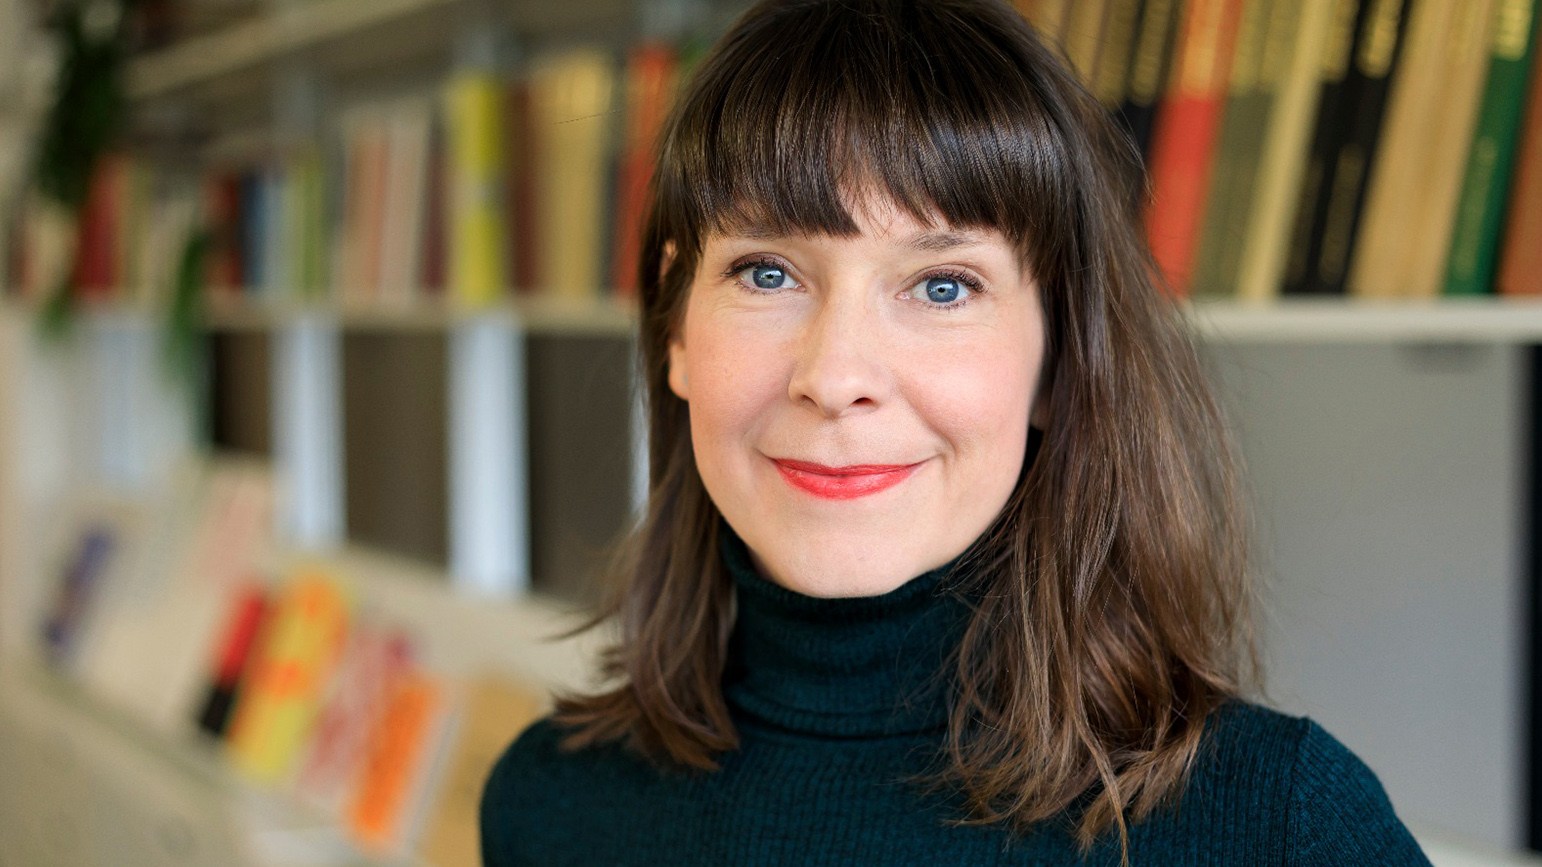 Headshot of a woman with a bookshelf in the background